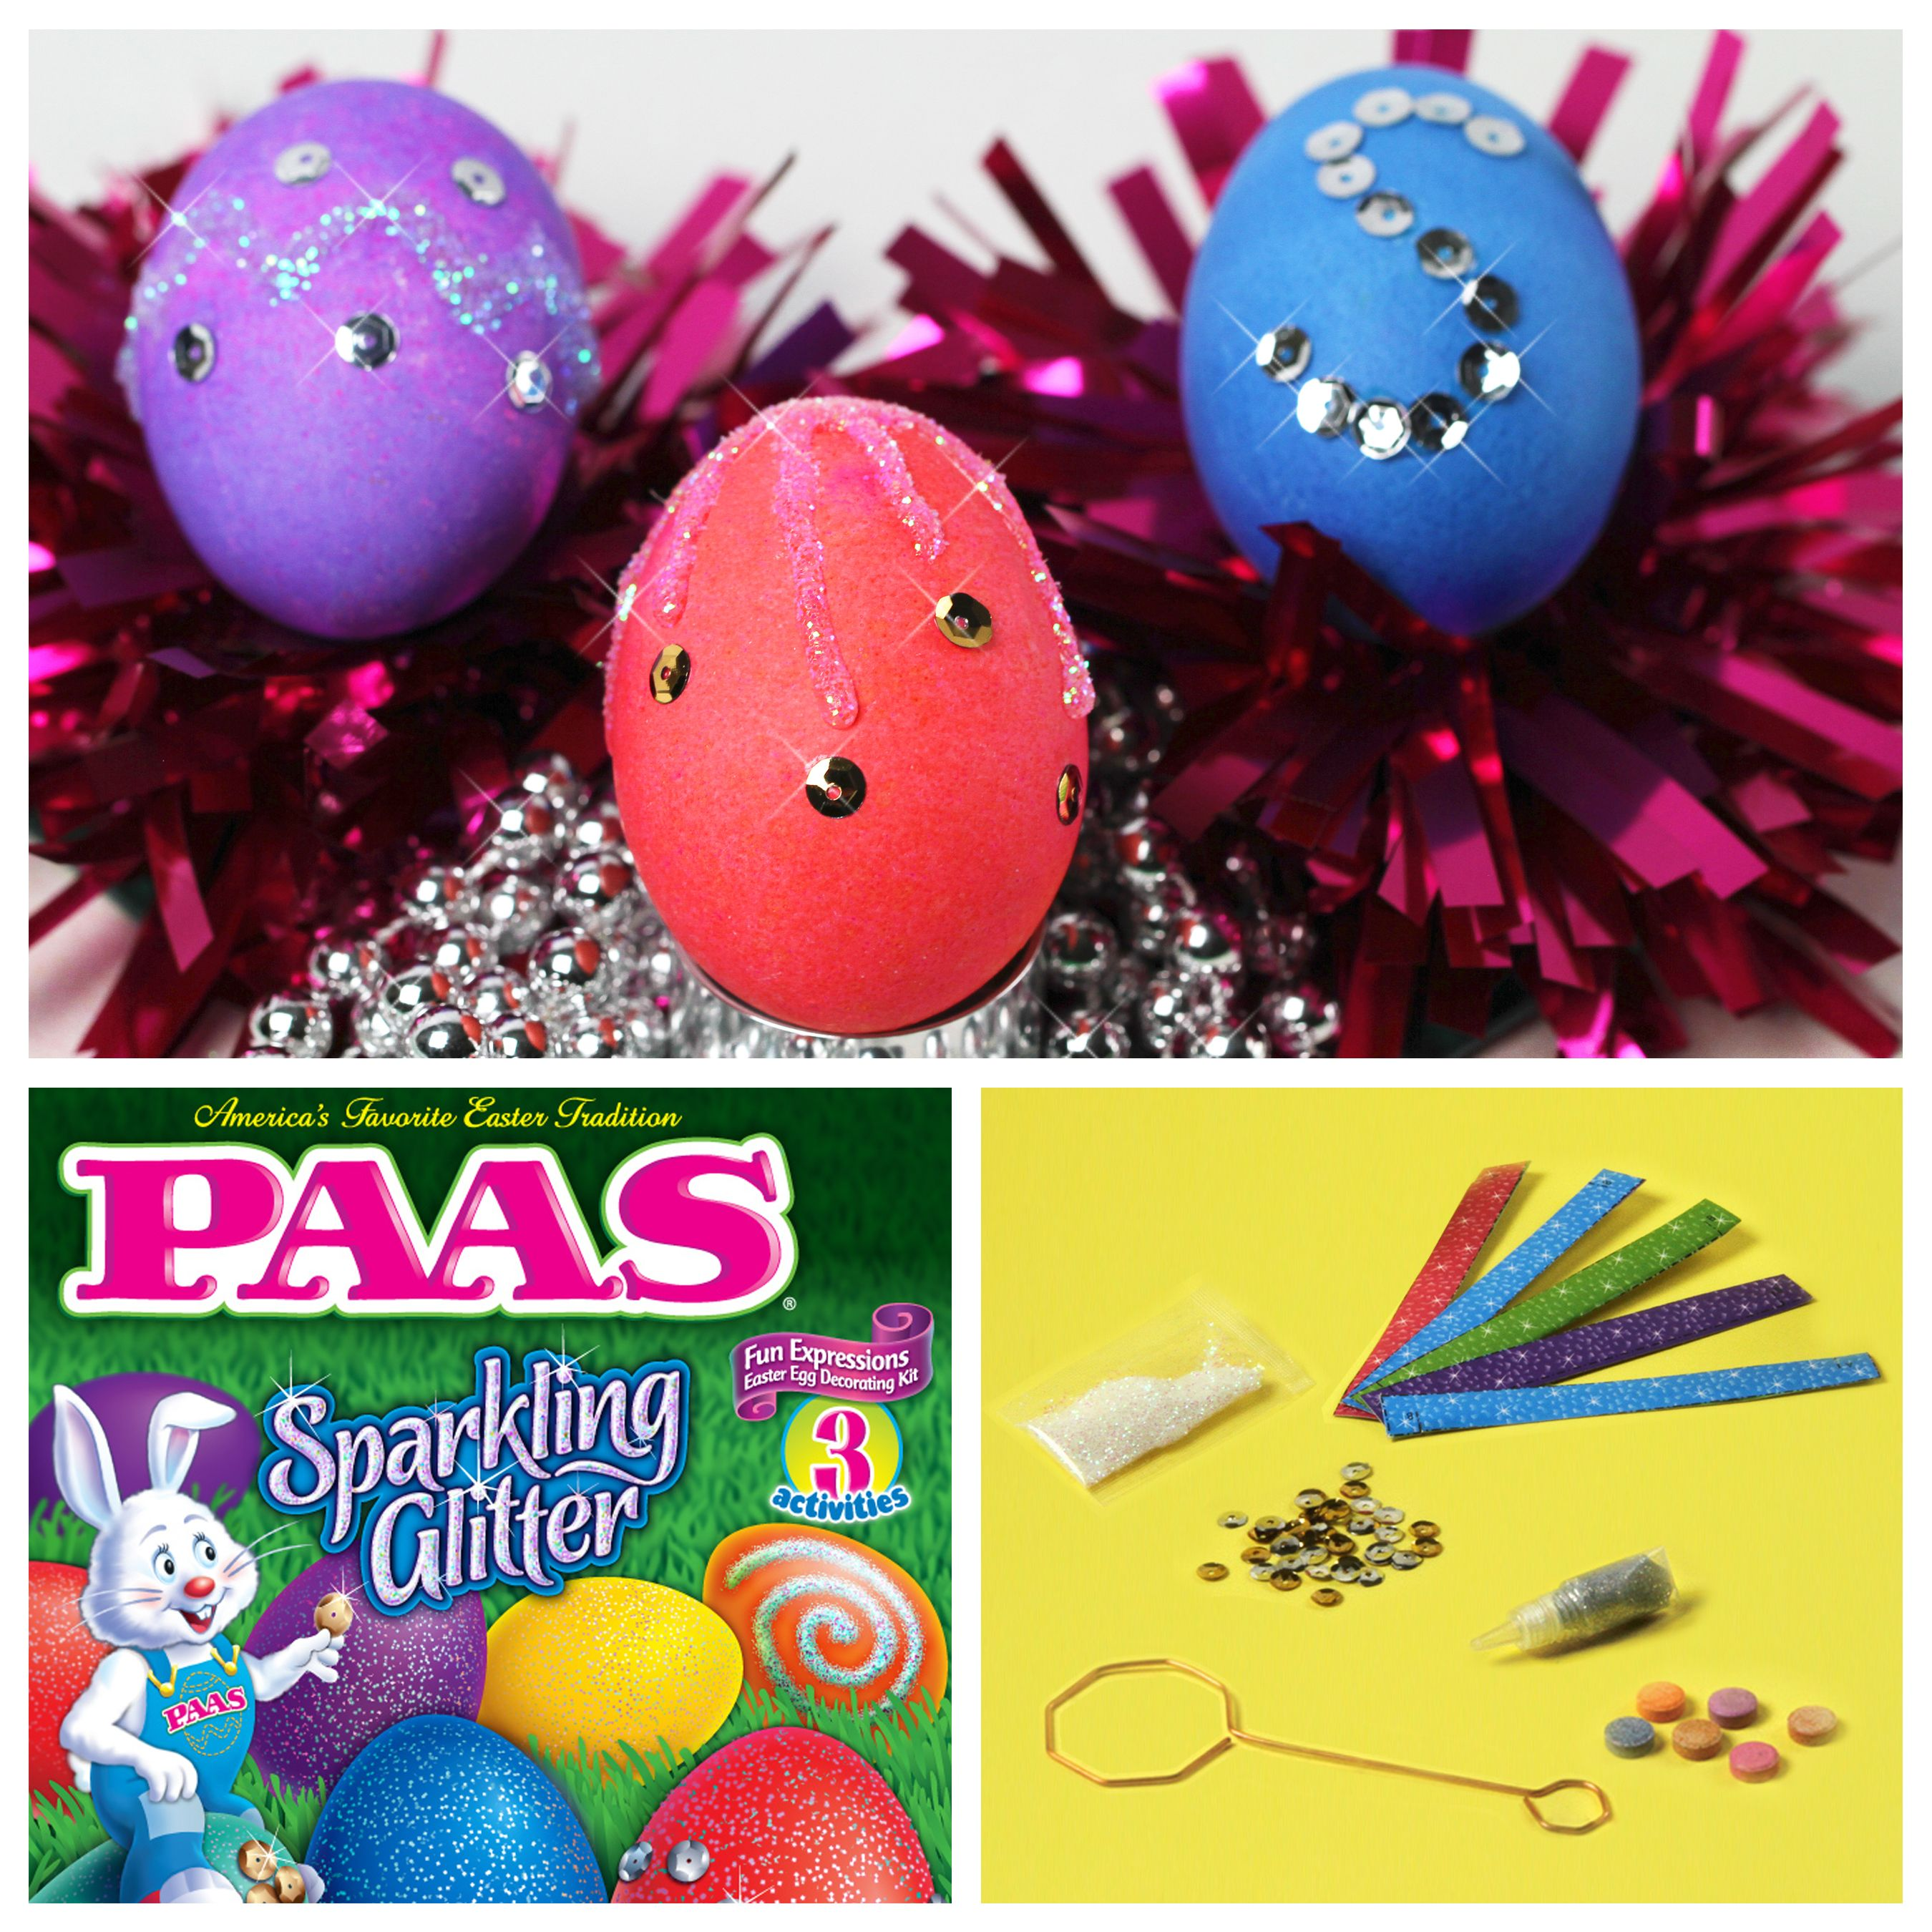 Sparkling Glitter easter egg decorating kit from PAAS